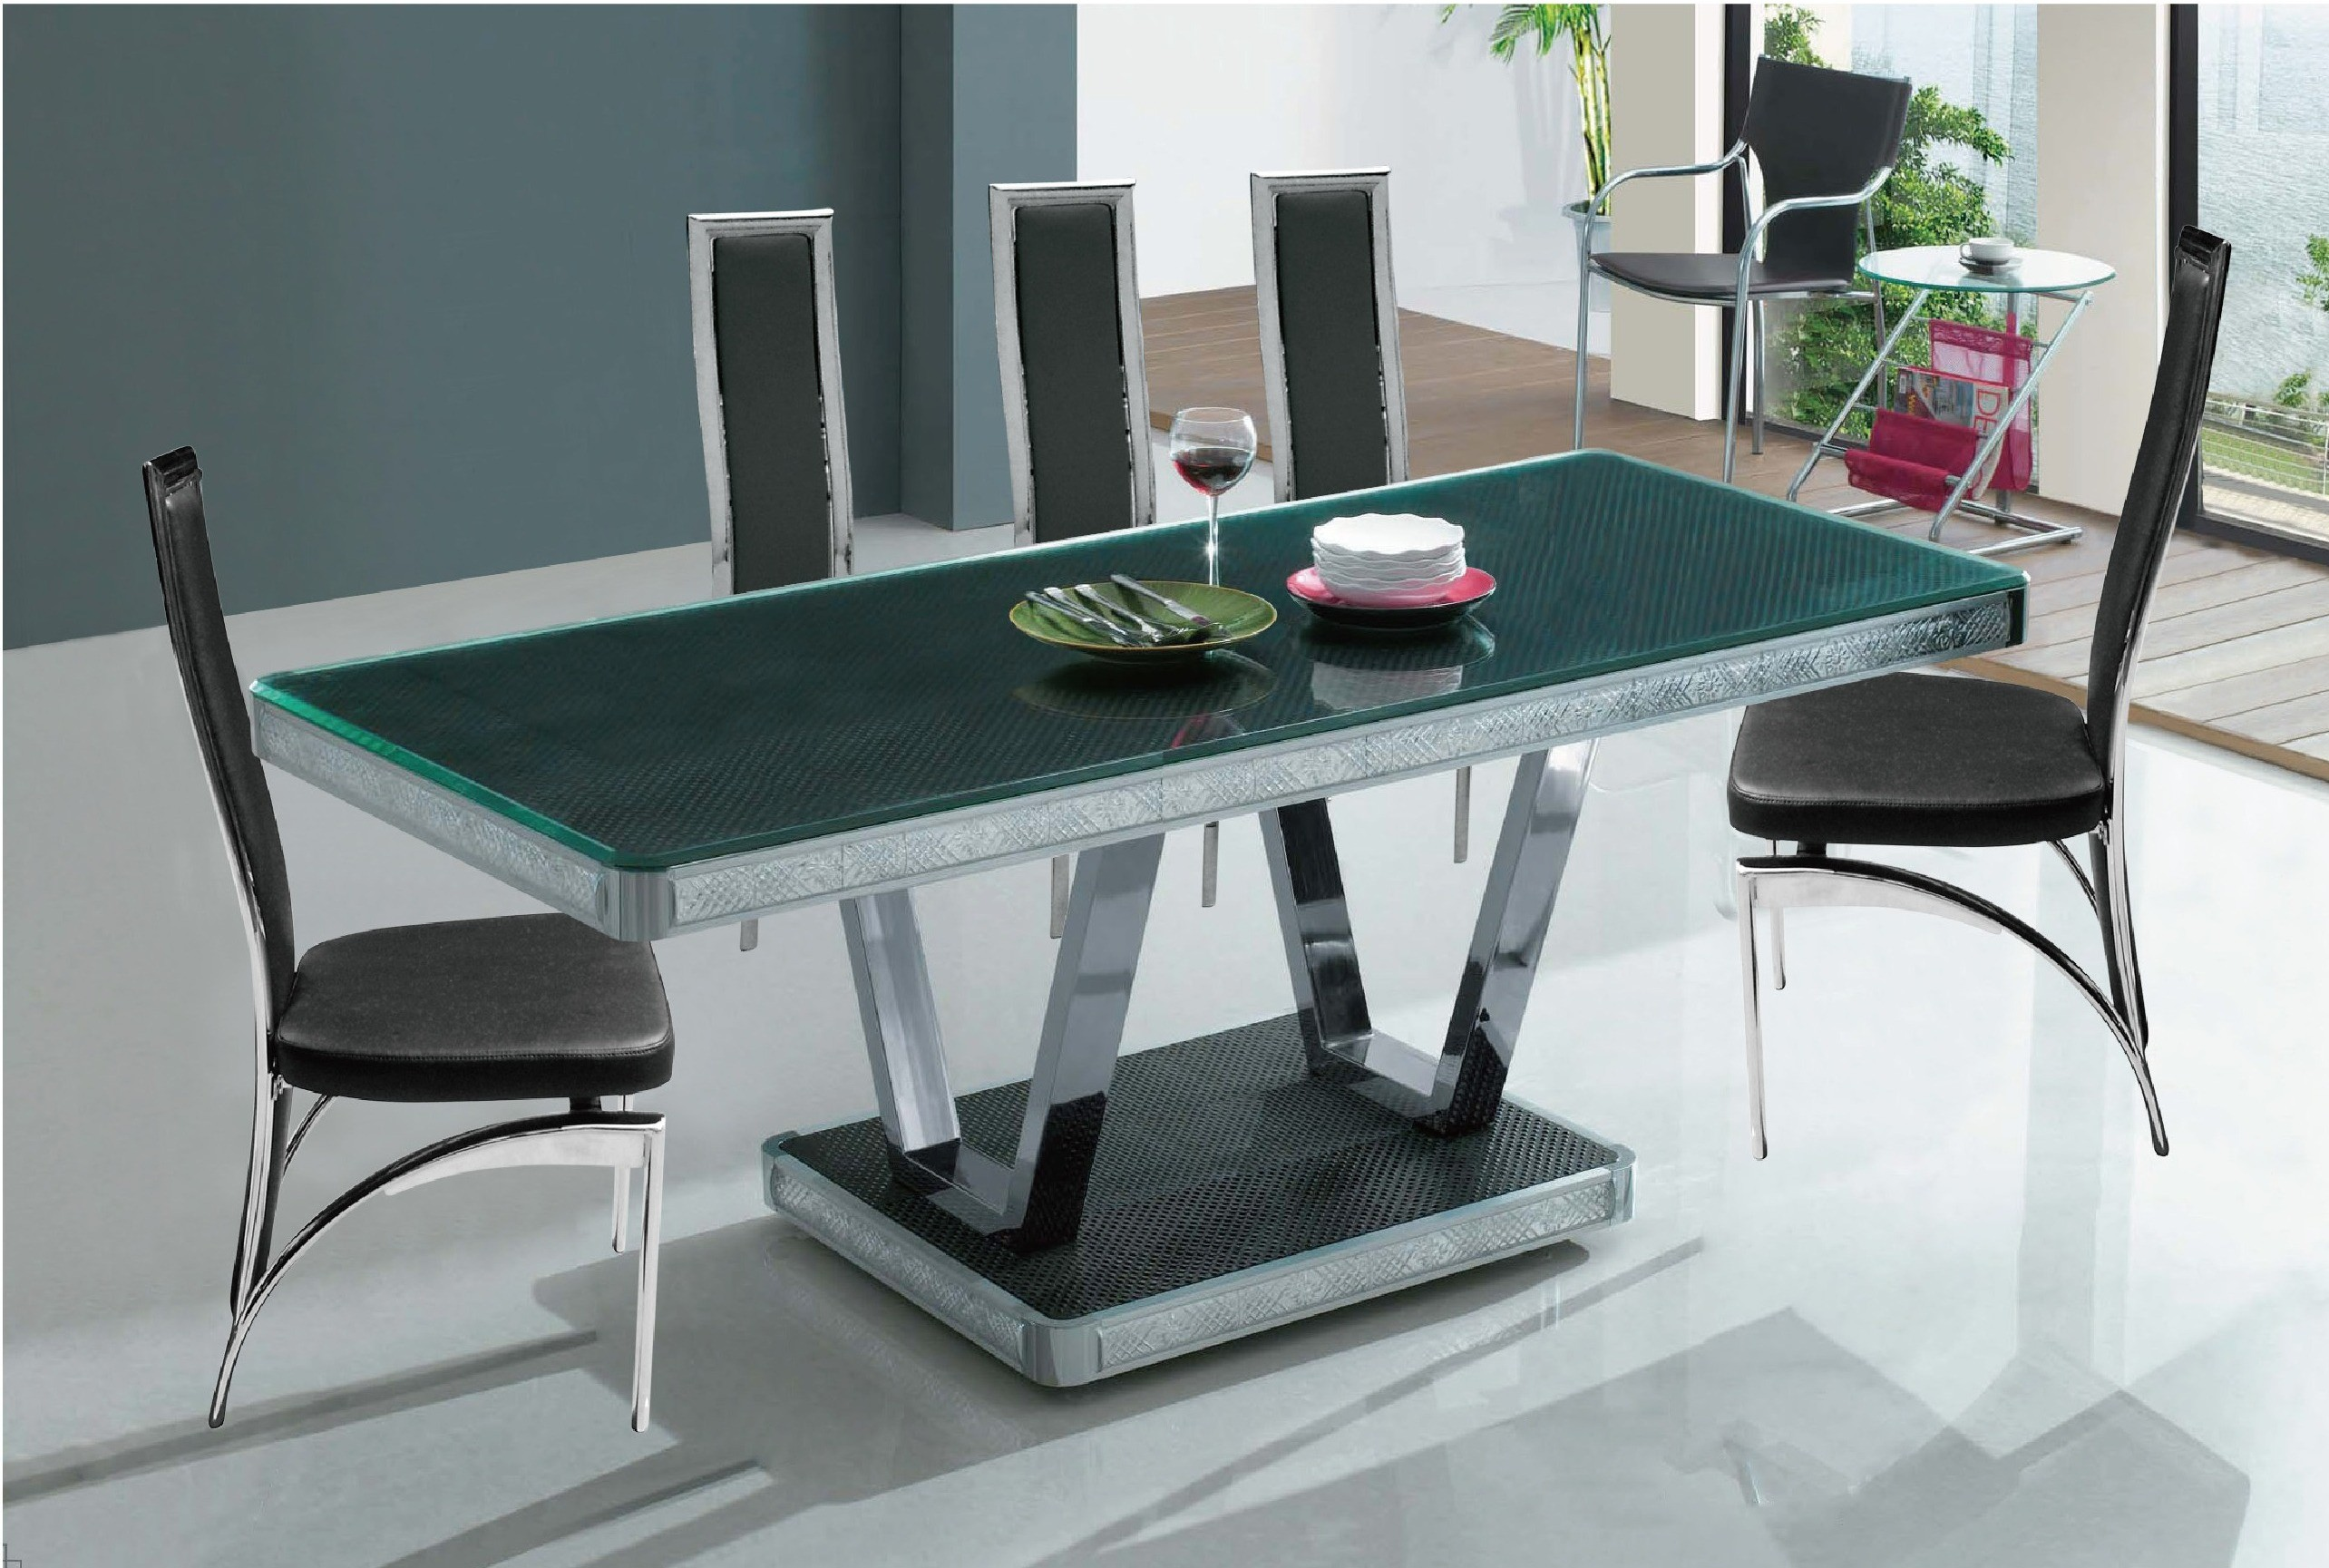 Dining Table Designs | Full HD Pictures